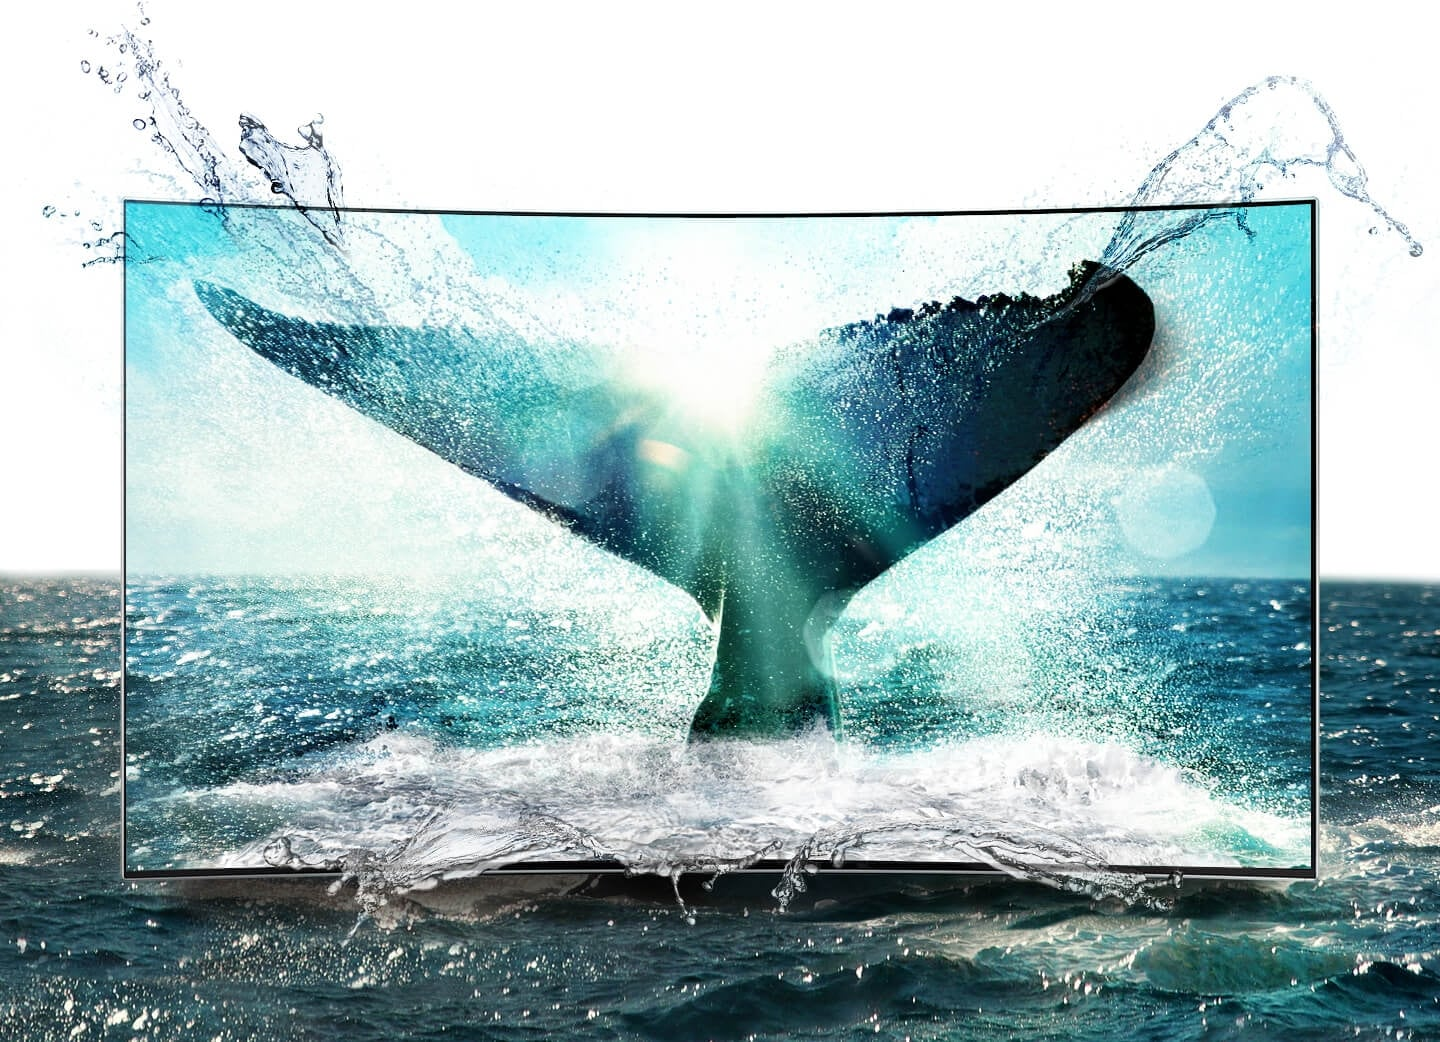 Bright and lively whale's tale image is on Samsung SUHD TV screen.